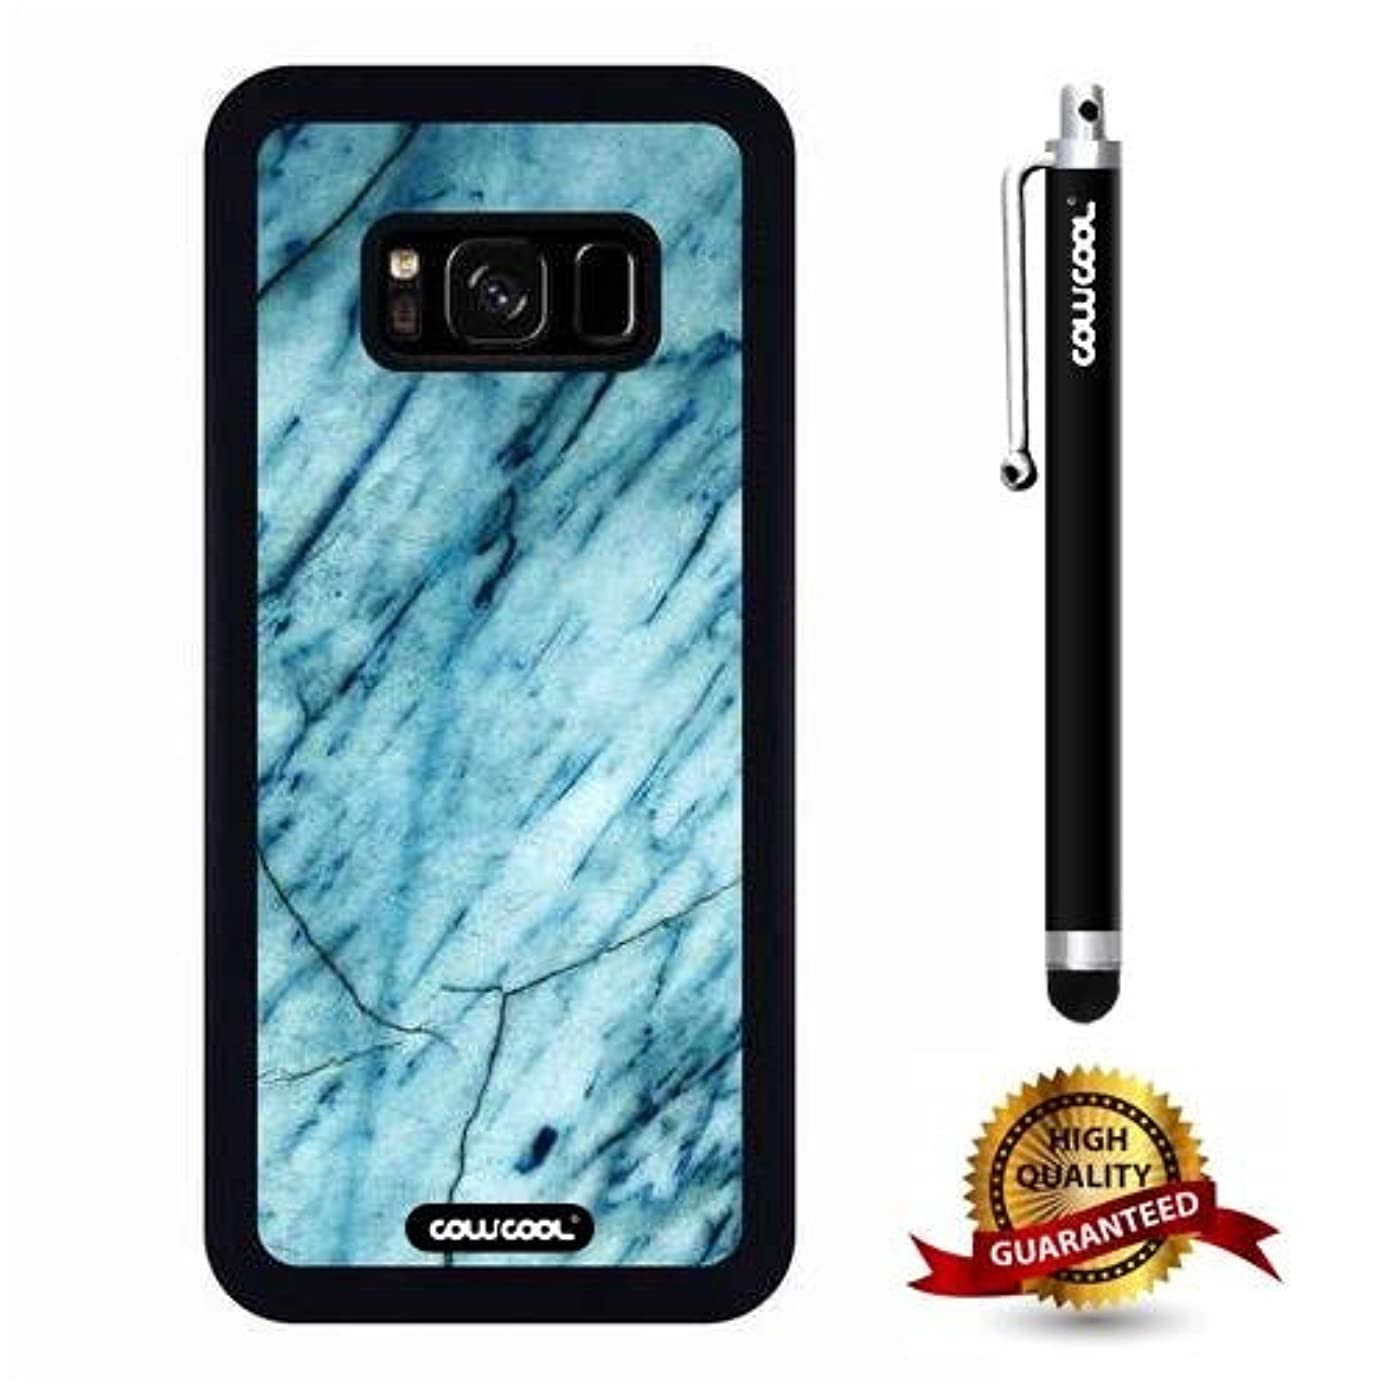 Galaxy S8 Case, Marble Pattern Case, Cowcool Ultra Thin Soft Silicone Case for Samsung Galaxy S8 - Slash Grid Marble Texture